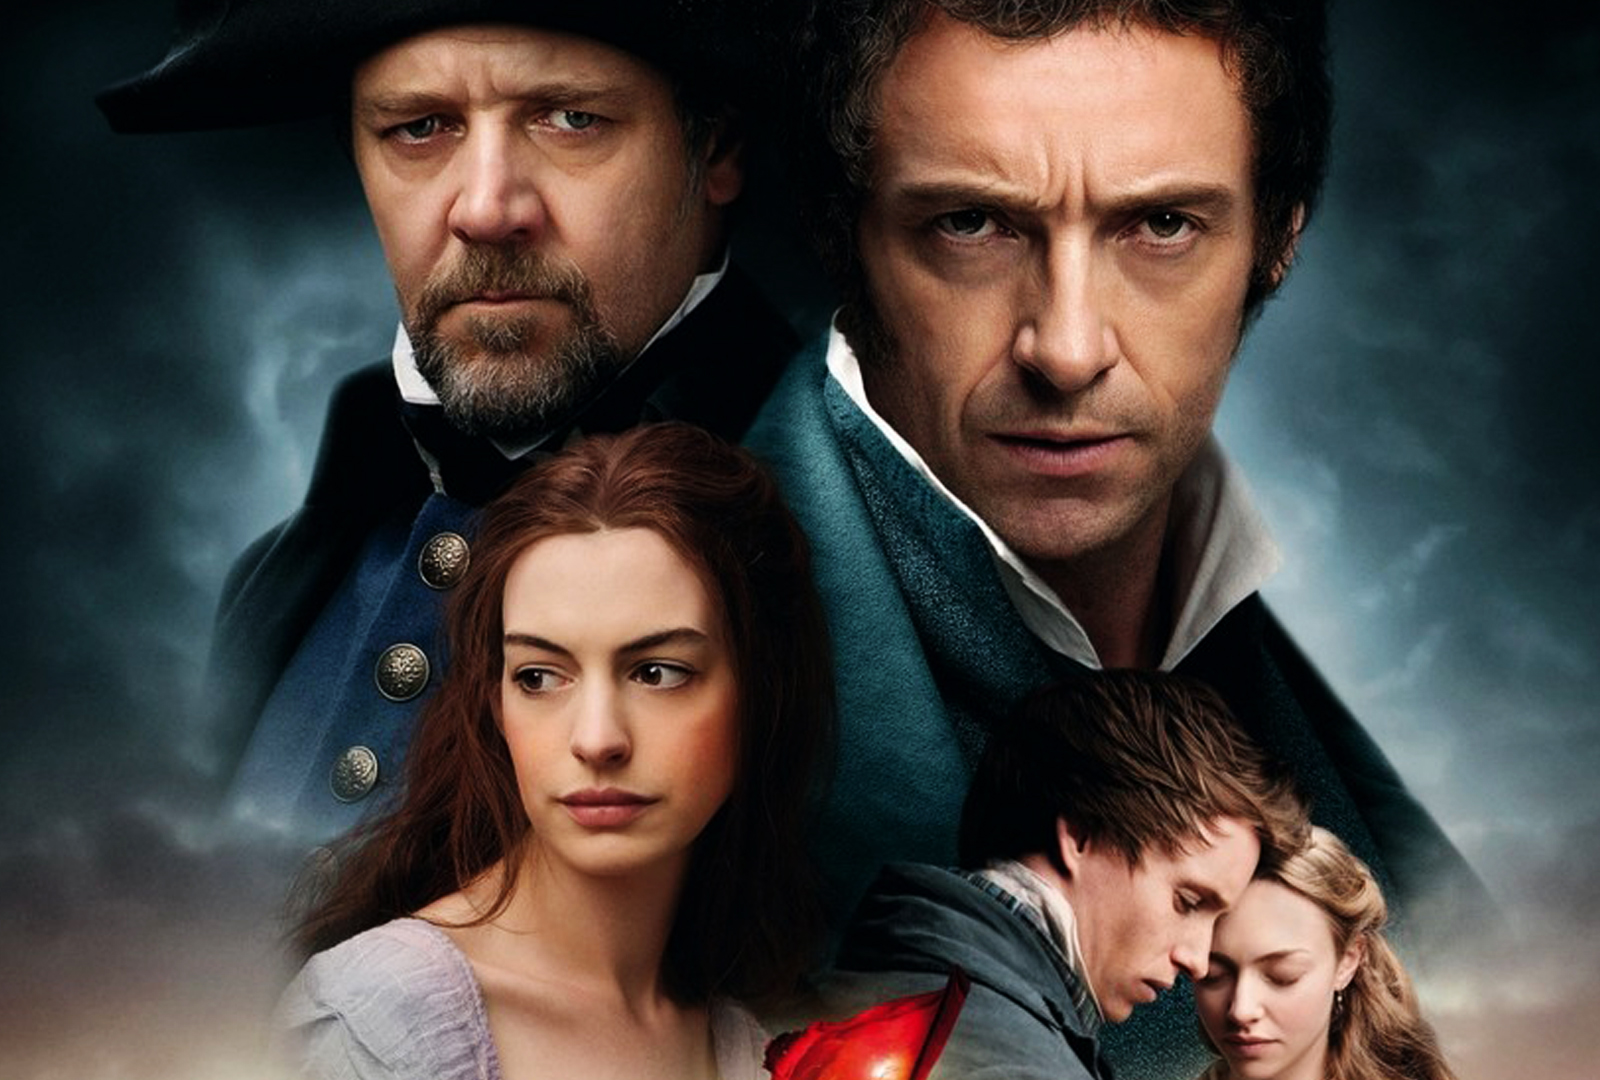 les miserables love and compassion essay Les misérables is many things, but never has it been dead  amnesty and  compassion for men such as jean valjean whose hardships have driven them to   love's most exquisite moments, he observed, are the moments of tender and  almost  film, victor hugo, essay, les miserables, les mis, musical.